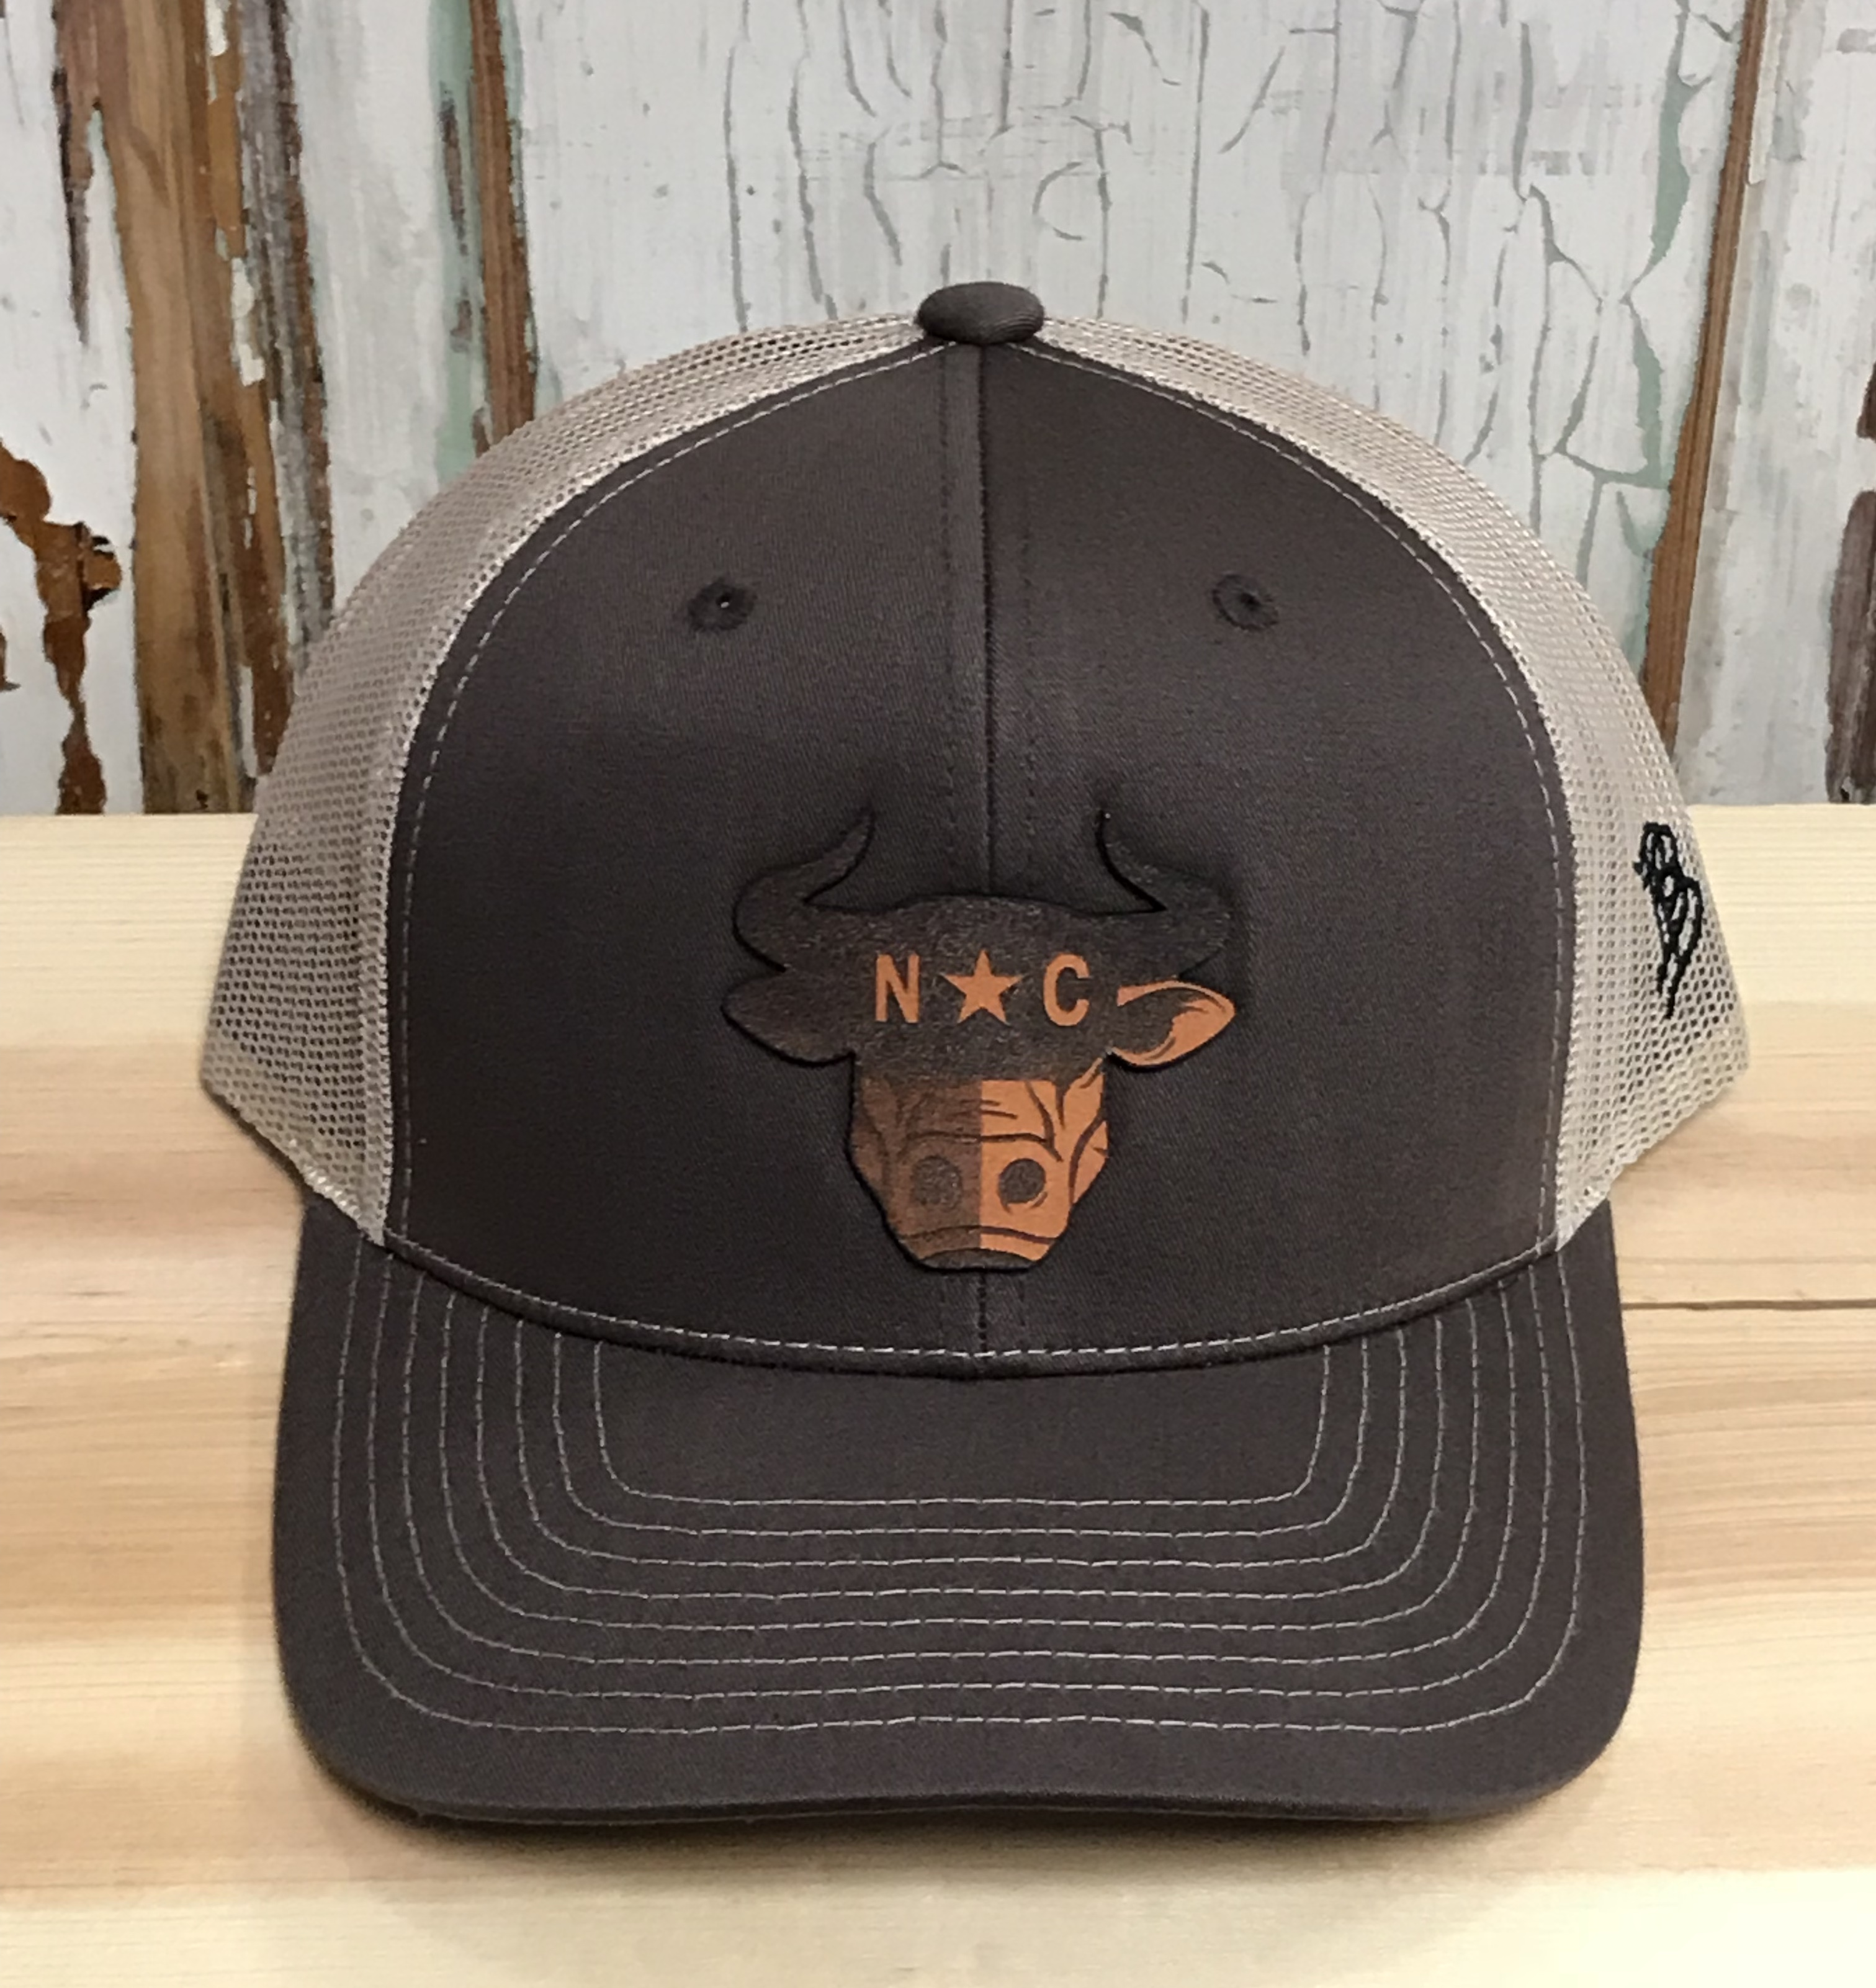 69f8d3ee3c90e Branded Bills North Carolina Bull City Leather Patch Snapback Trucker Hat  Brown Khaki Accessories